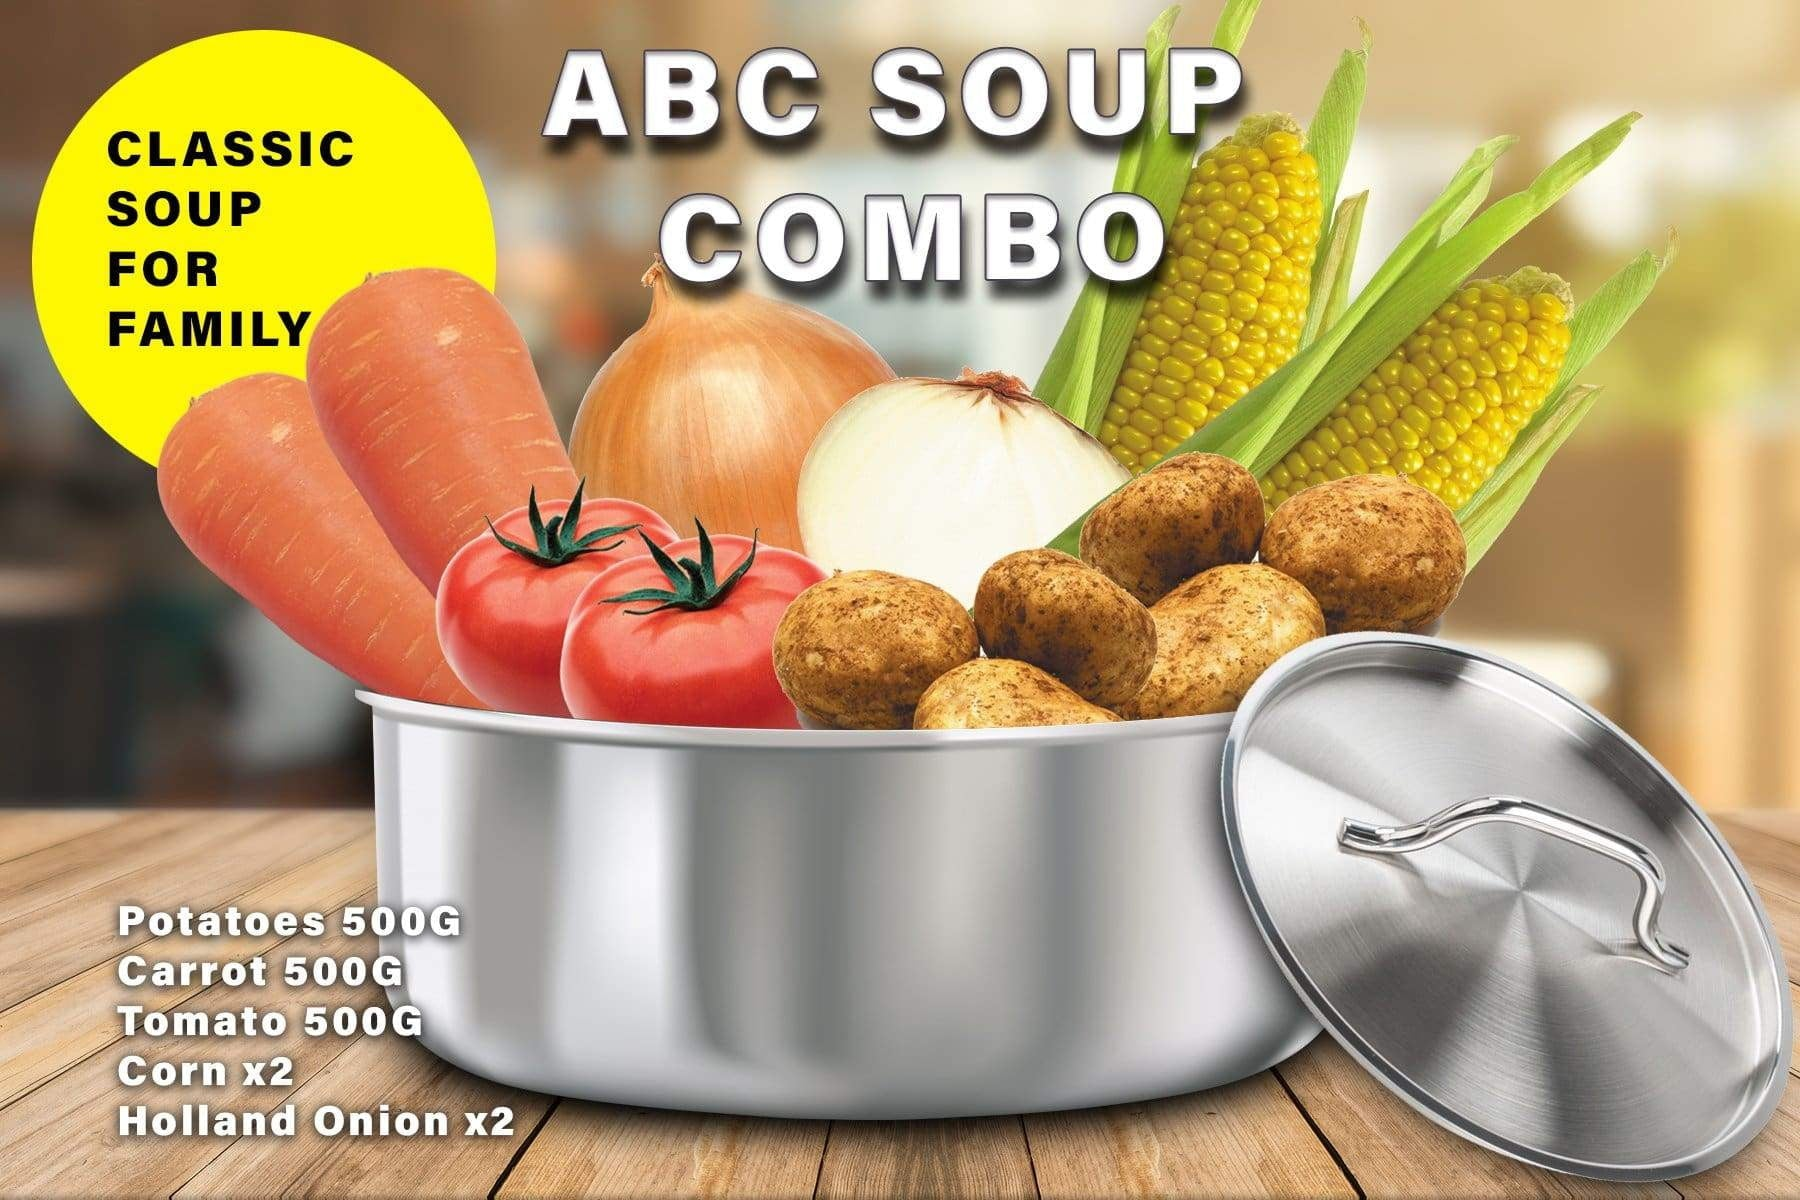 Penang Grocery Store Online Next Day Delivery is Offering ABC Soup Combo